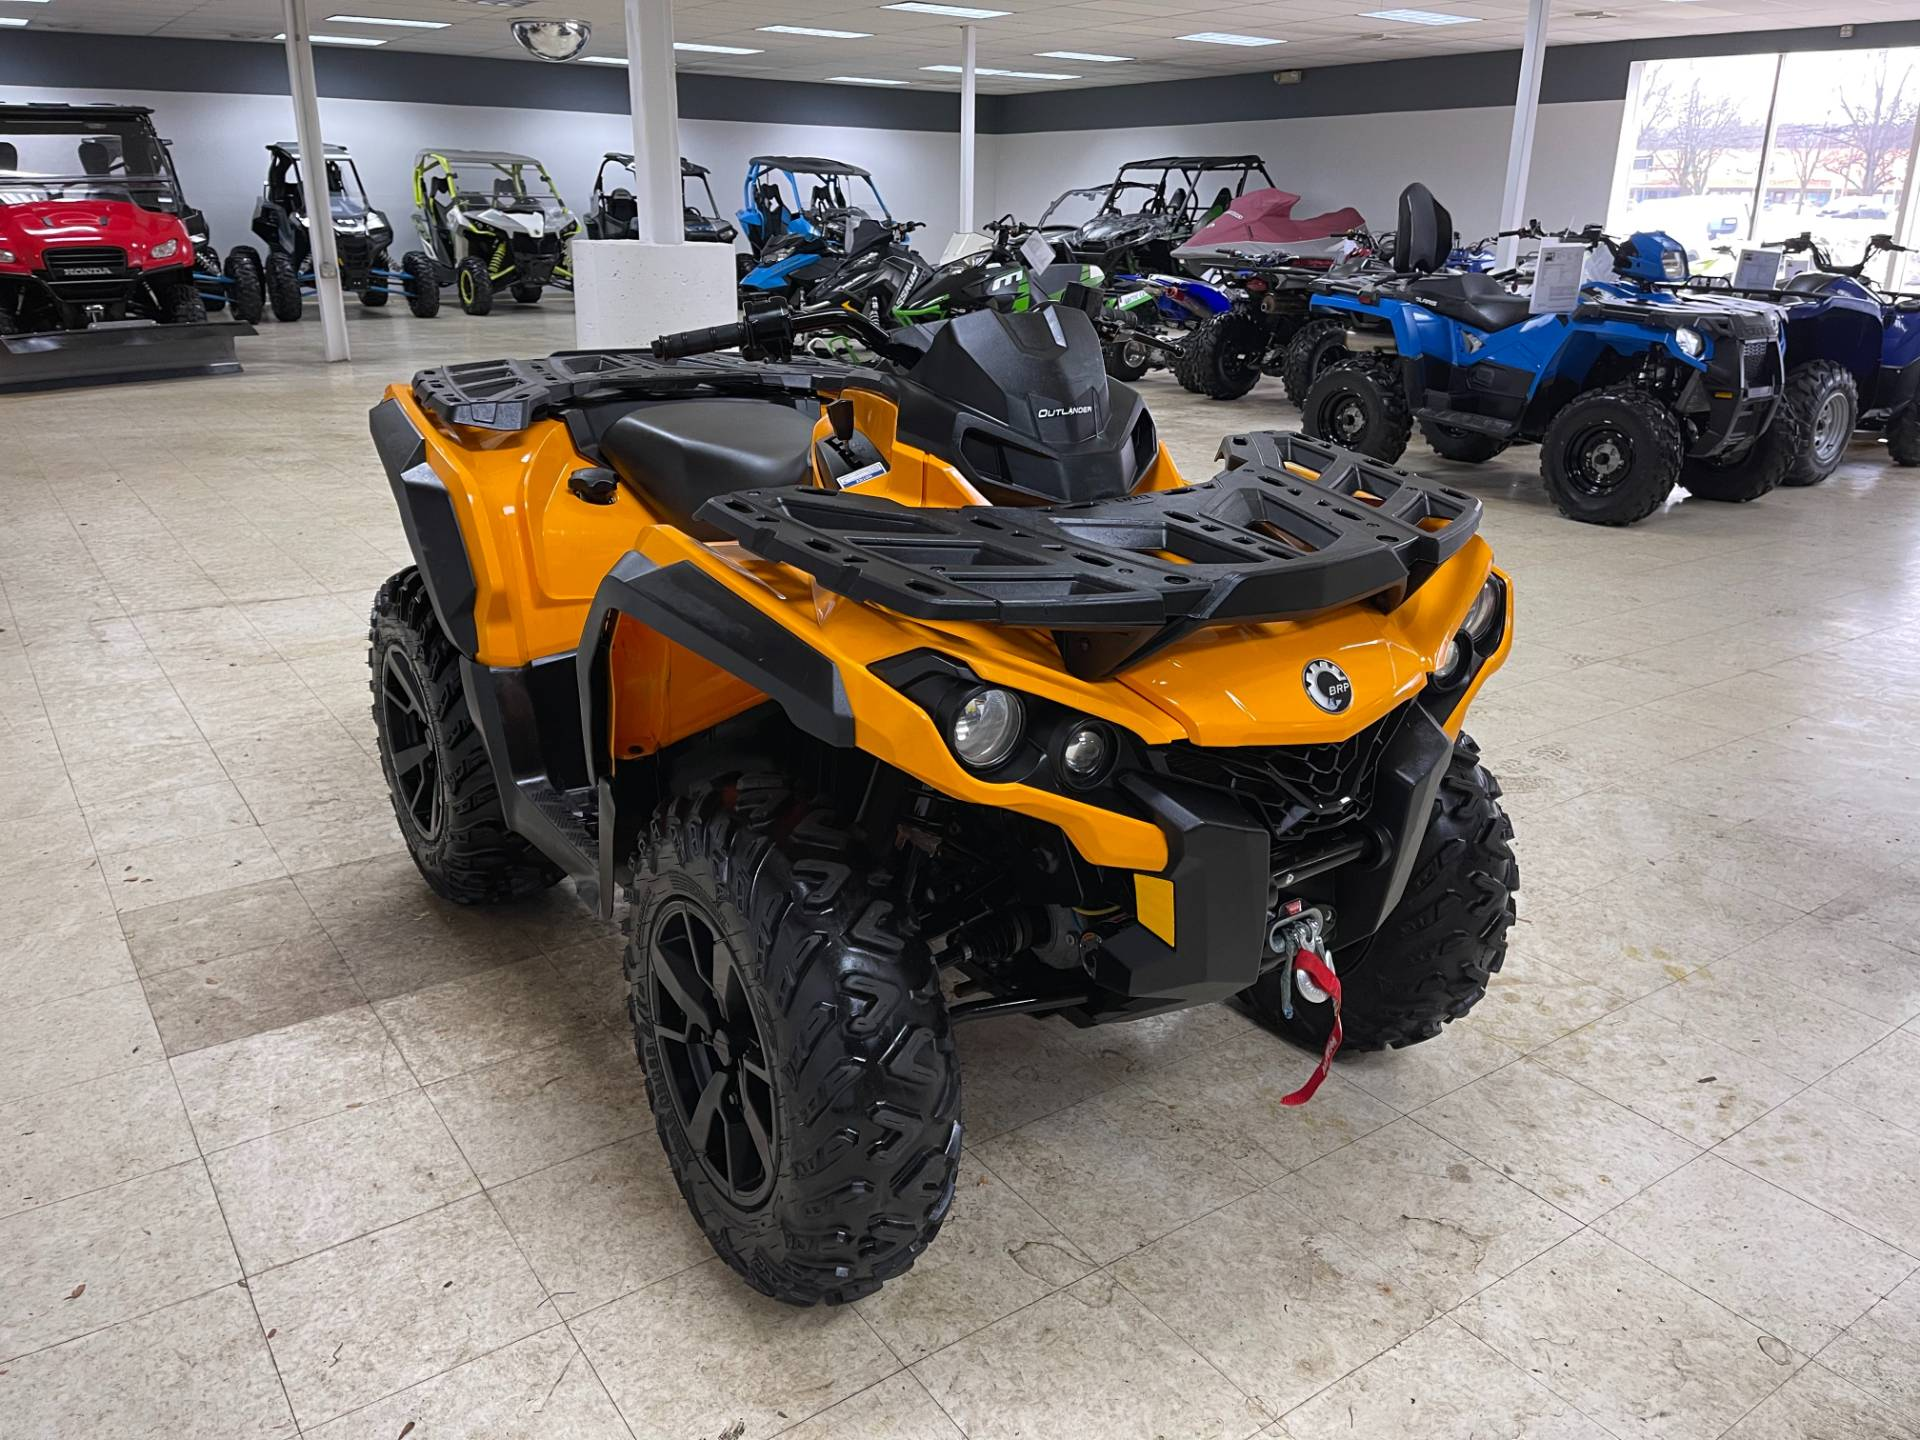 2019 Can-Am Outlander DPS 850 in Herkimer, New York - Photo 8